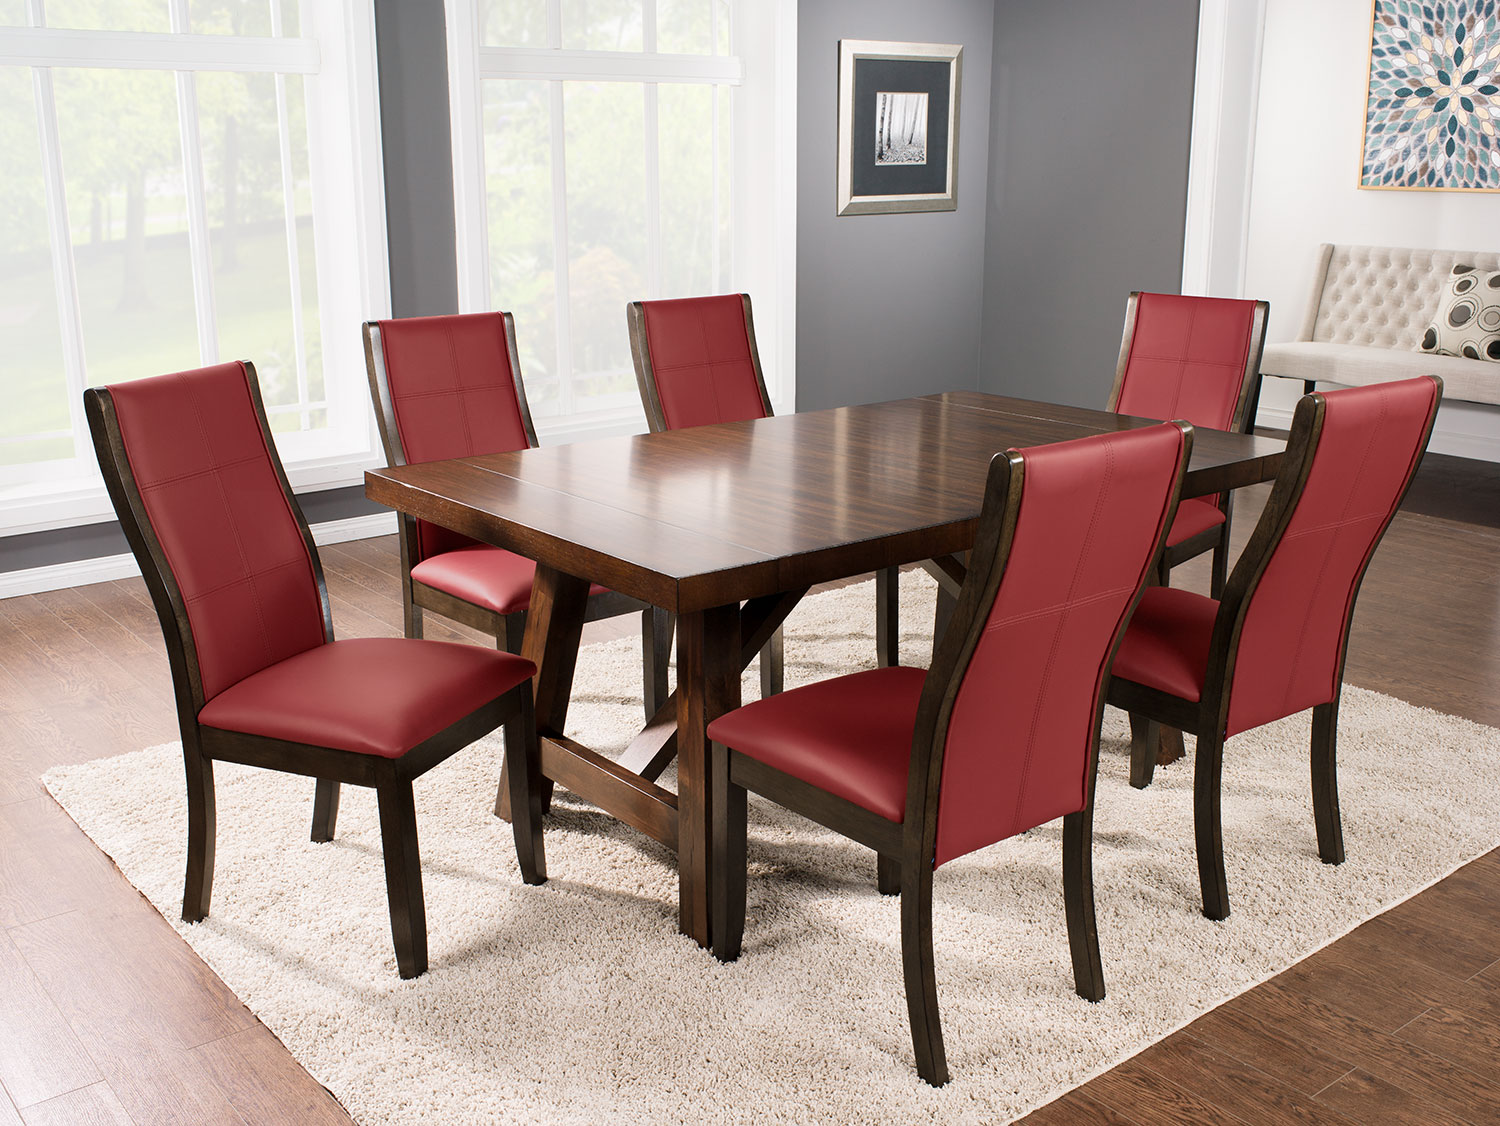 Adara 7-Piece Dining Package with Tyler Chairs – Red